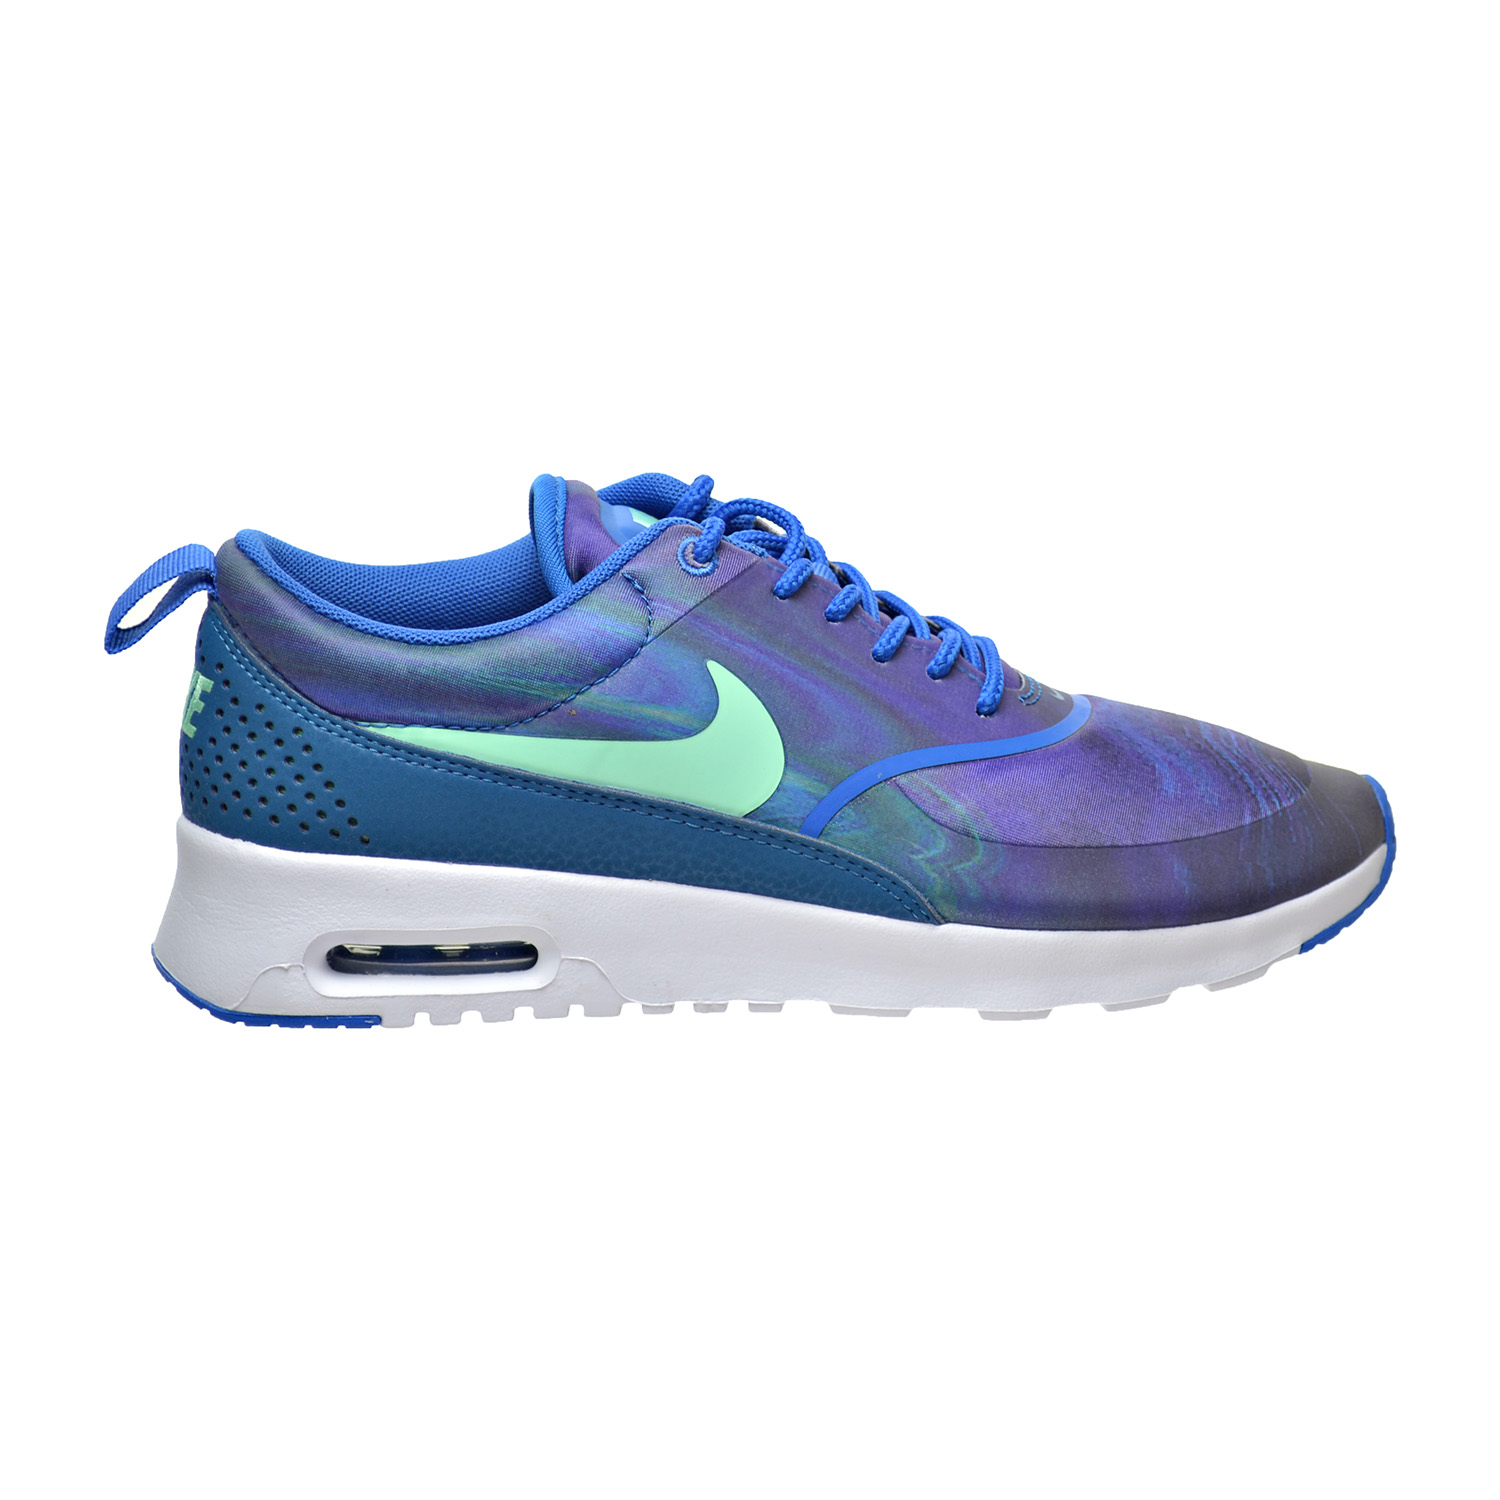 low priced 6dc9a e95f2 Details about Nike Air Max Thea Print Women s Shoes Blue Spark Green Glow  599408-405